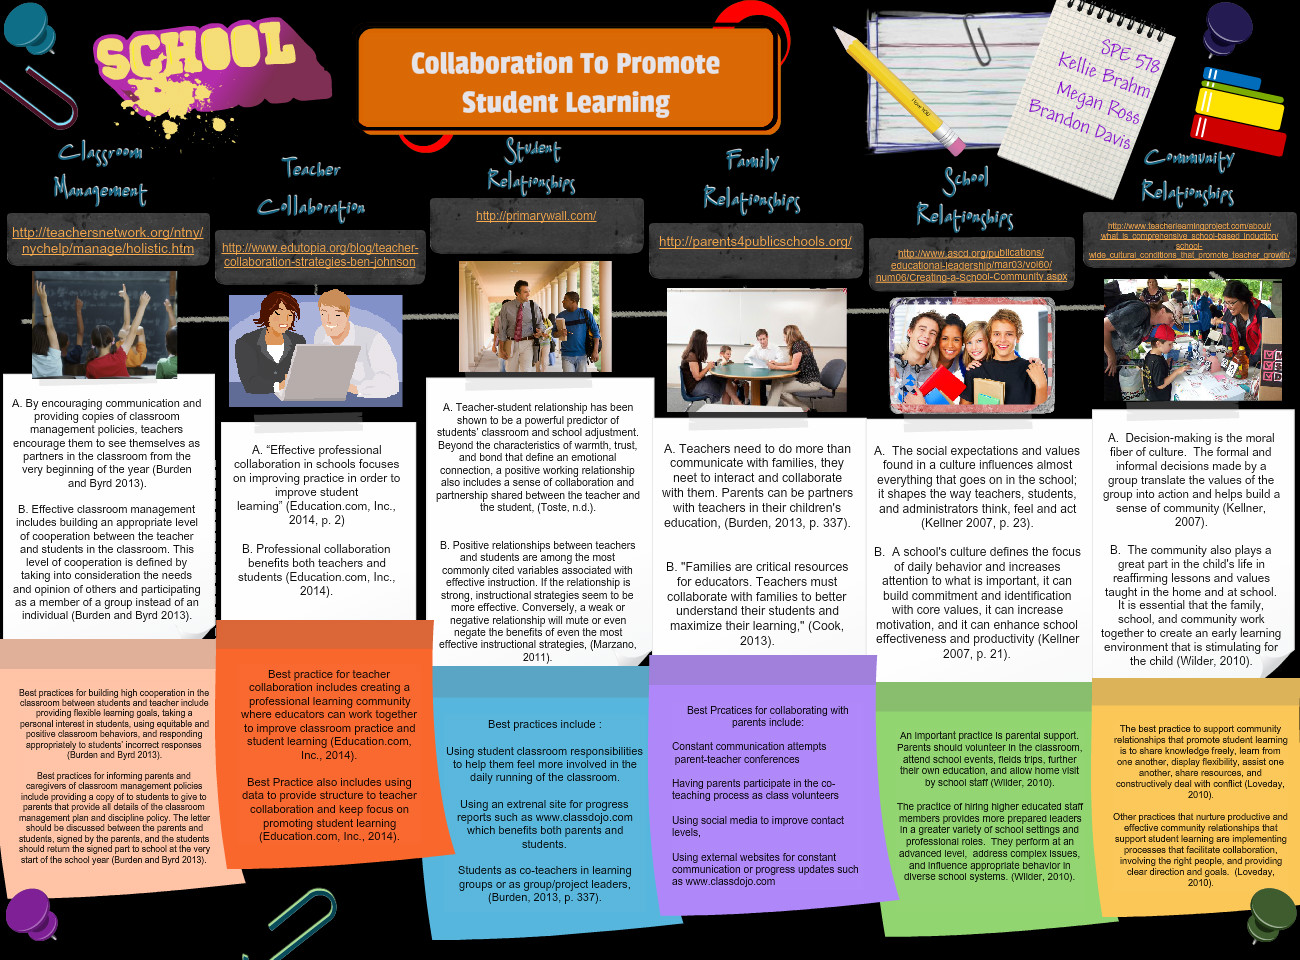 Collaboration to Promote Student Learning